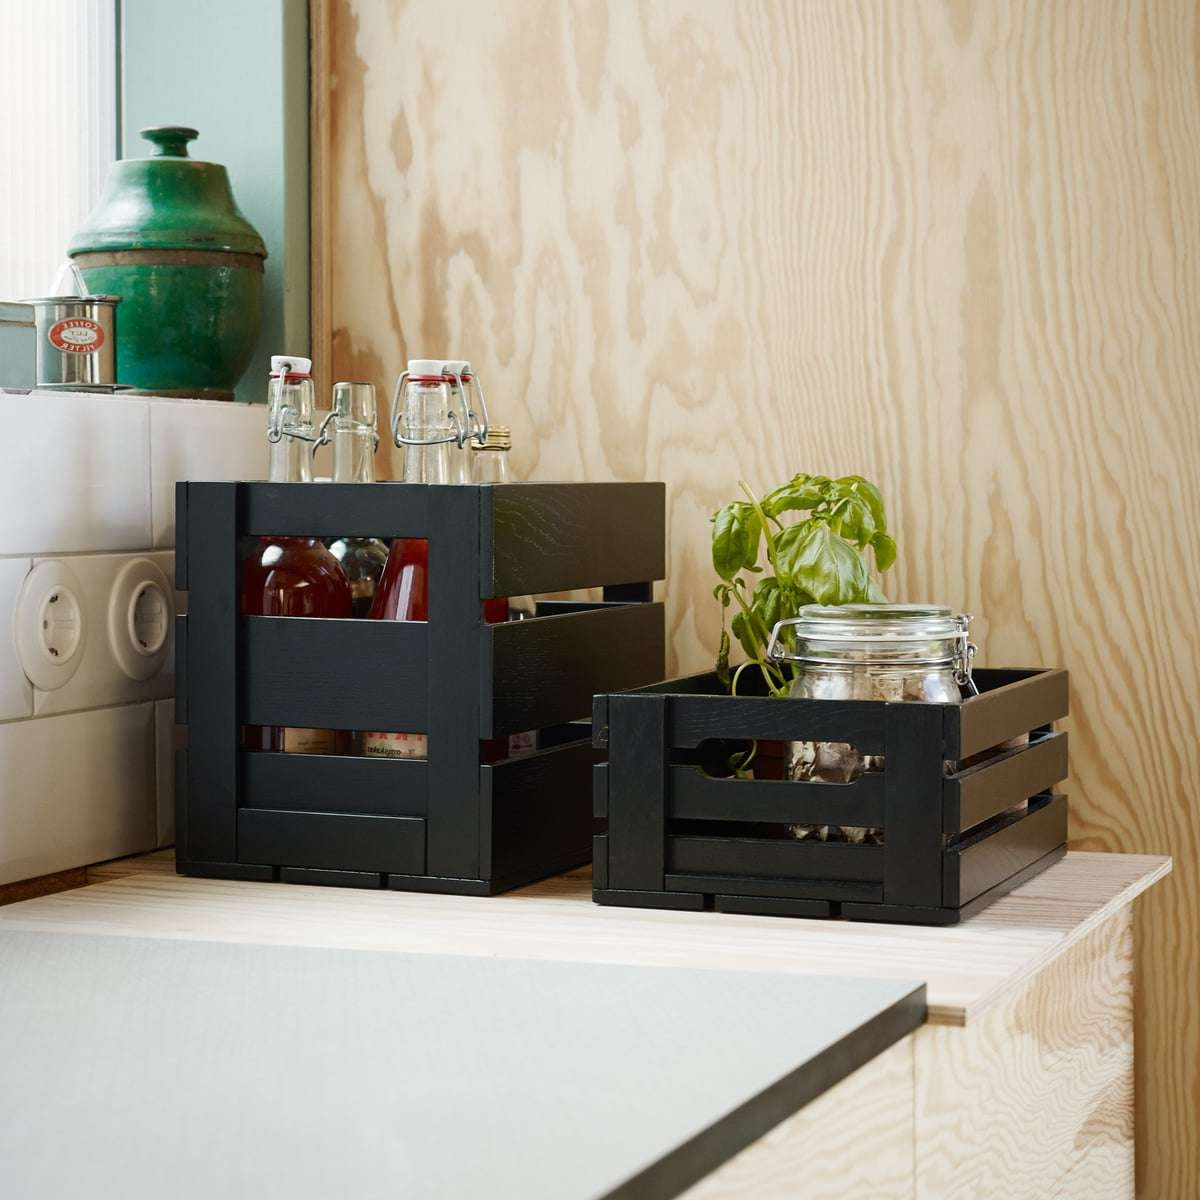 Dania Box 4 (Apple Crate) | Skagerak | Shop With Dania Sideboards (View 2 of 20)